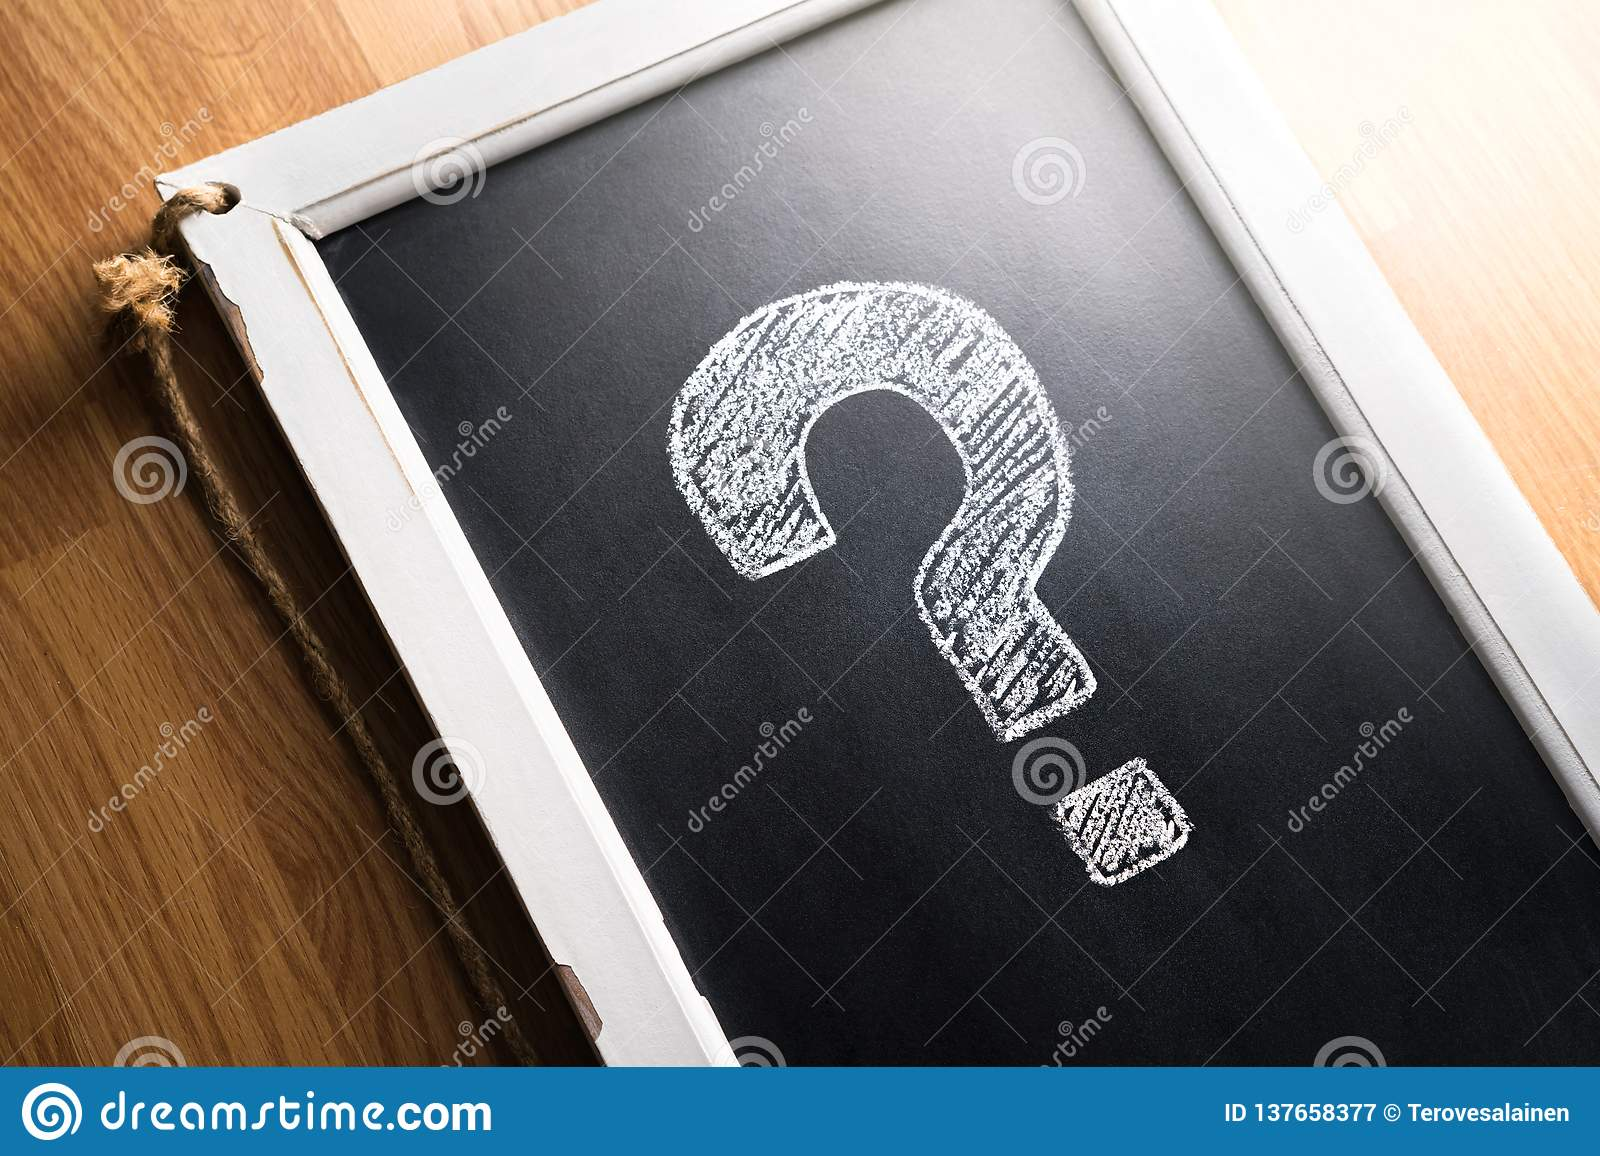 Question mark drawn on chalkboard. About us, help or info for business. Survey, poll or quiz concept. Punctuation, decision.